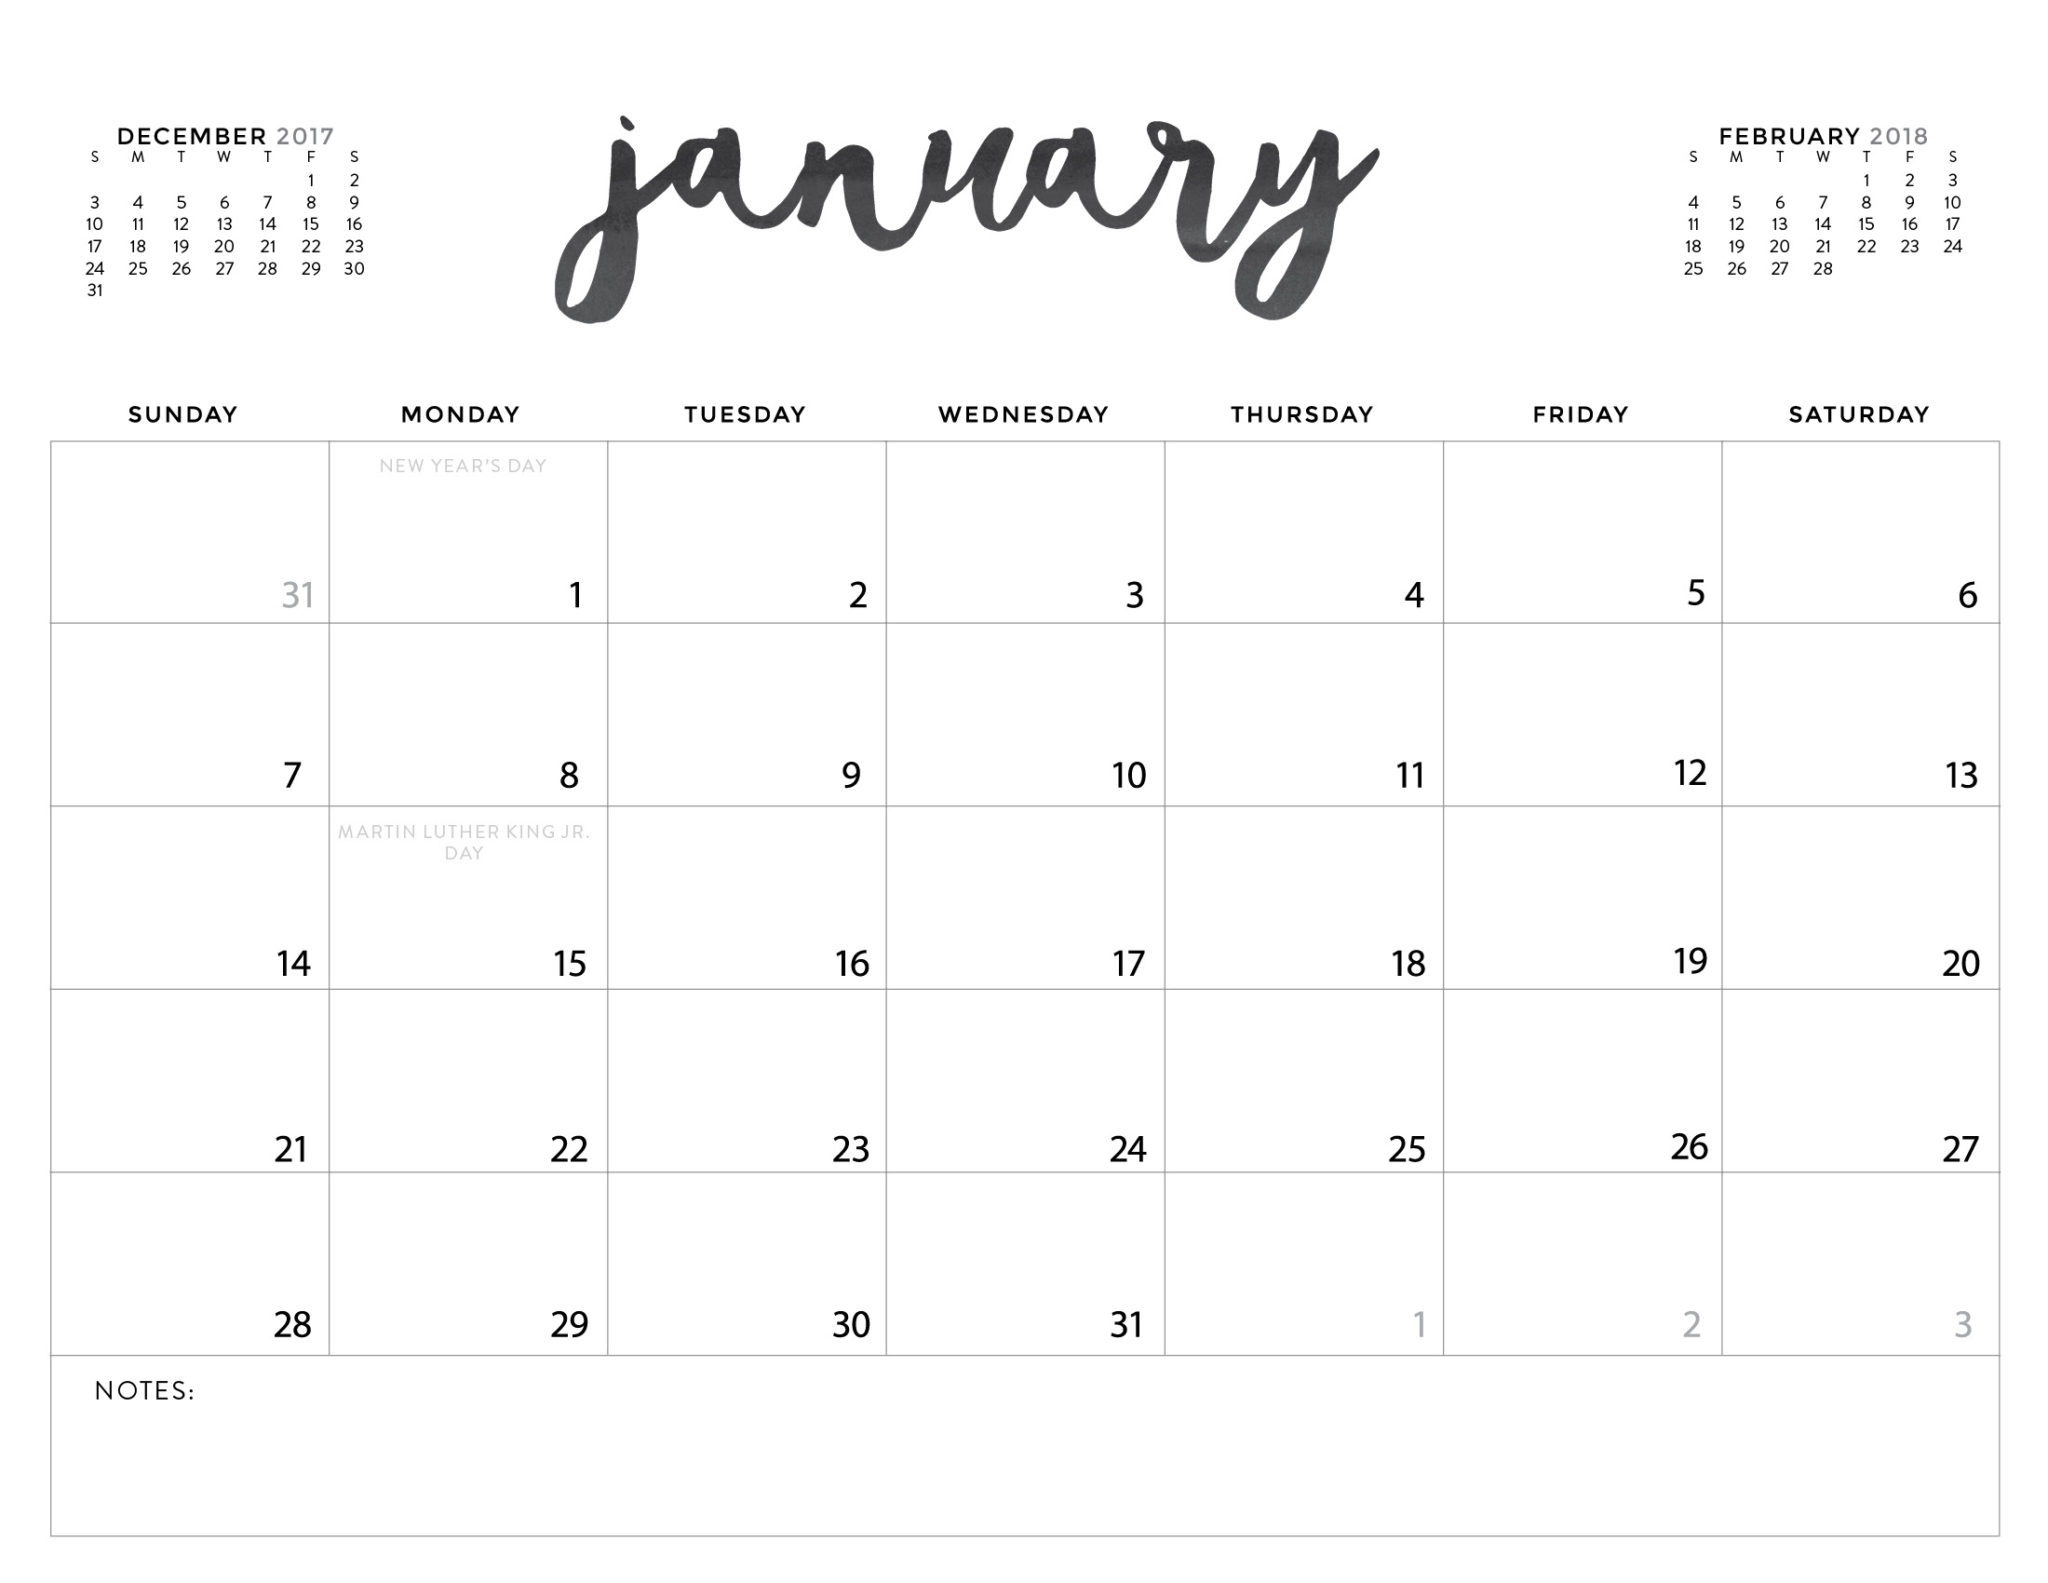 Download Your Free 2018 Printable Calendars Today! There Are 28 inside Free Downloadable Cute Calendar Template